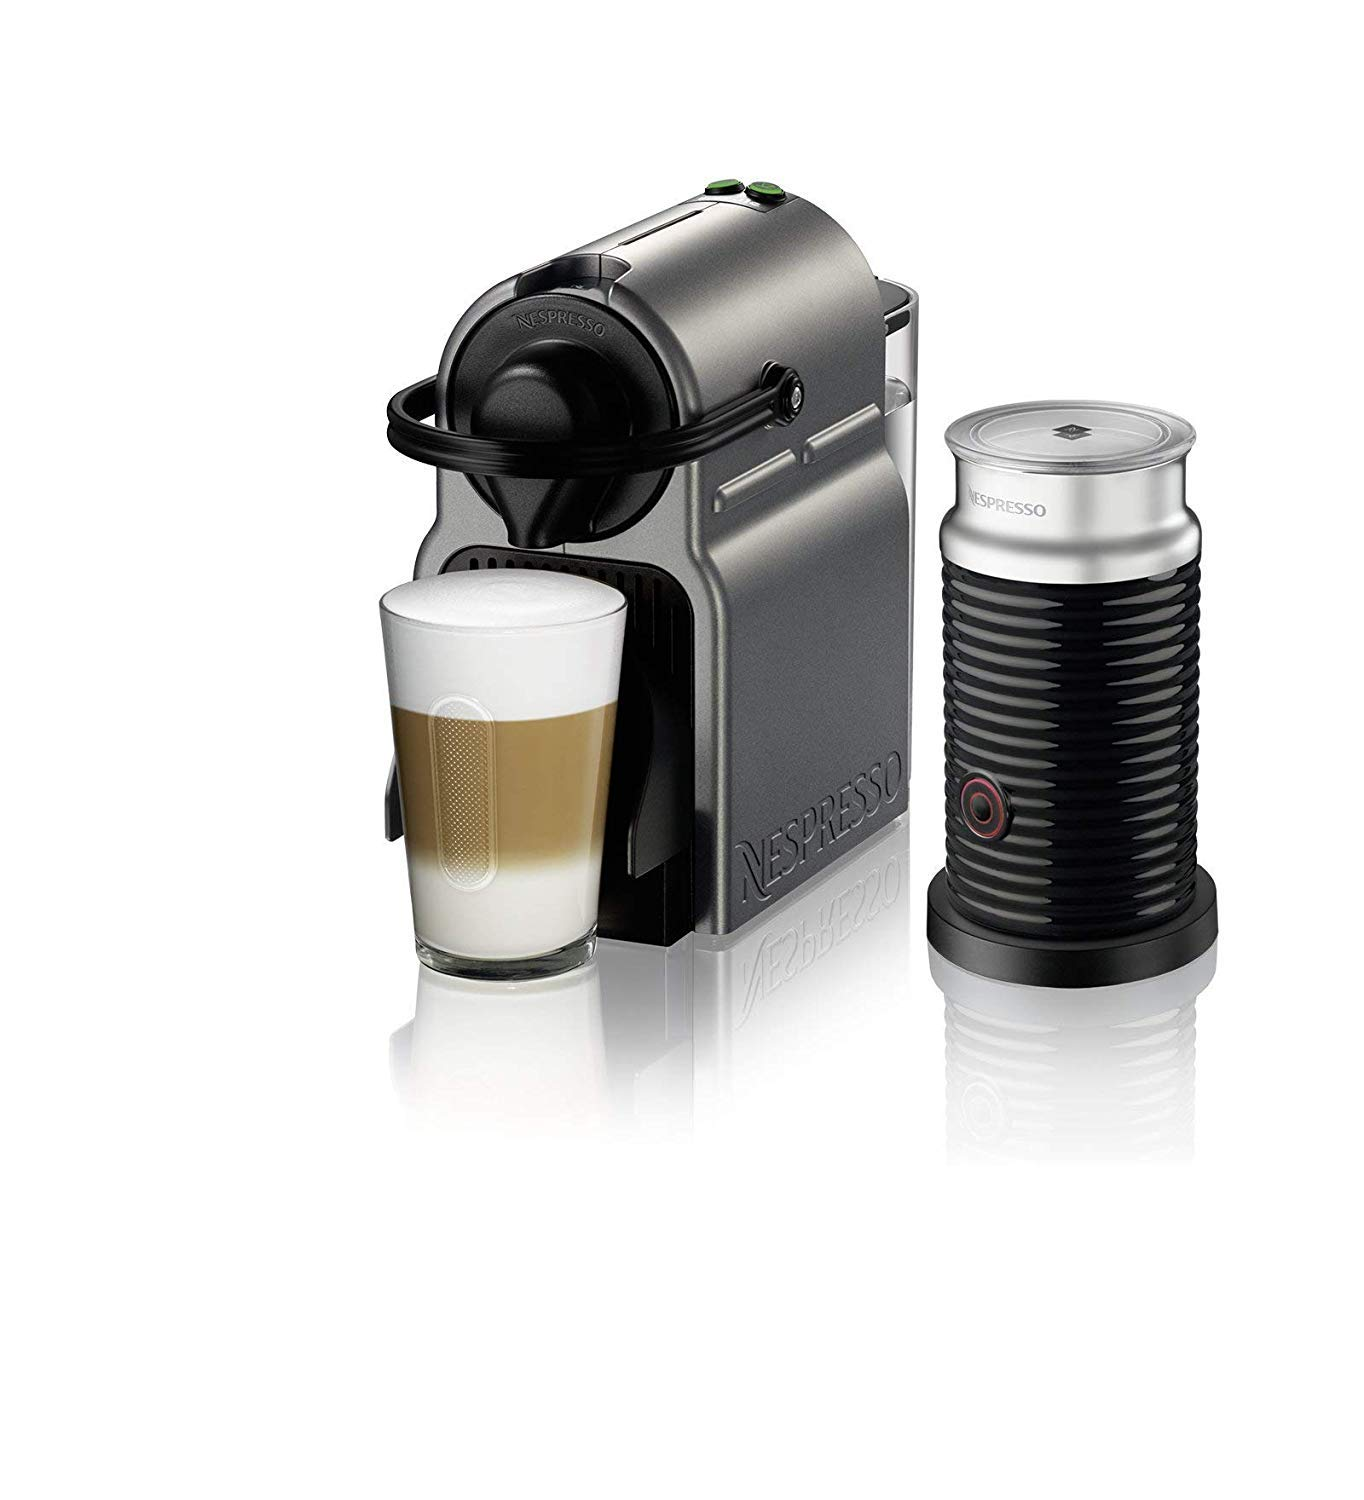 Nespresso Inissia Original Espresso Machine with Aeroccino Milk Frother Bundle by Breville, Titan (Renewed)